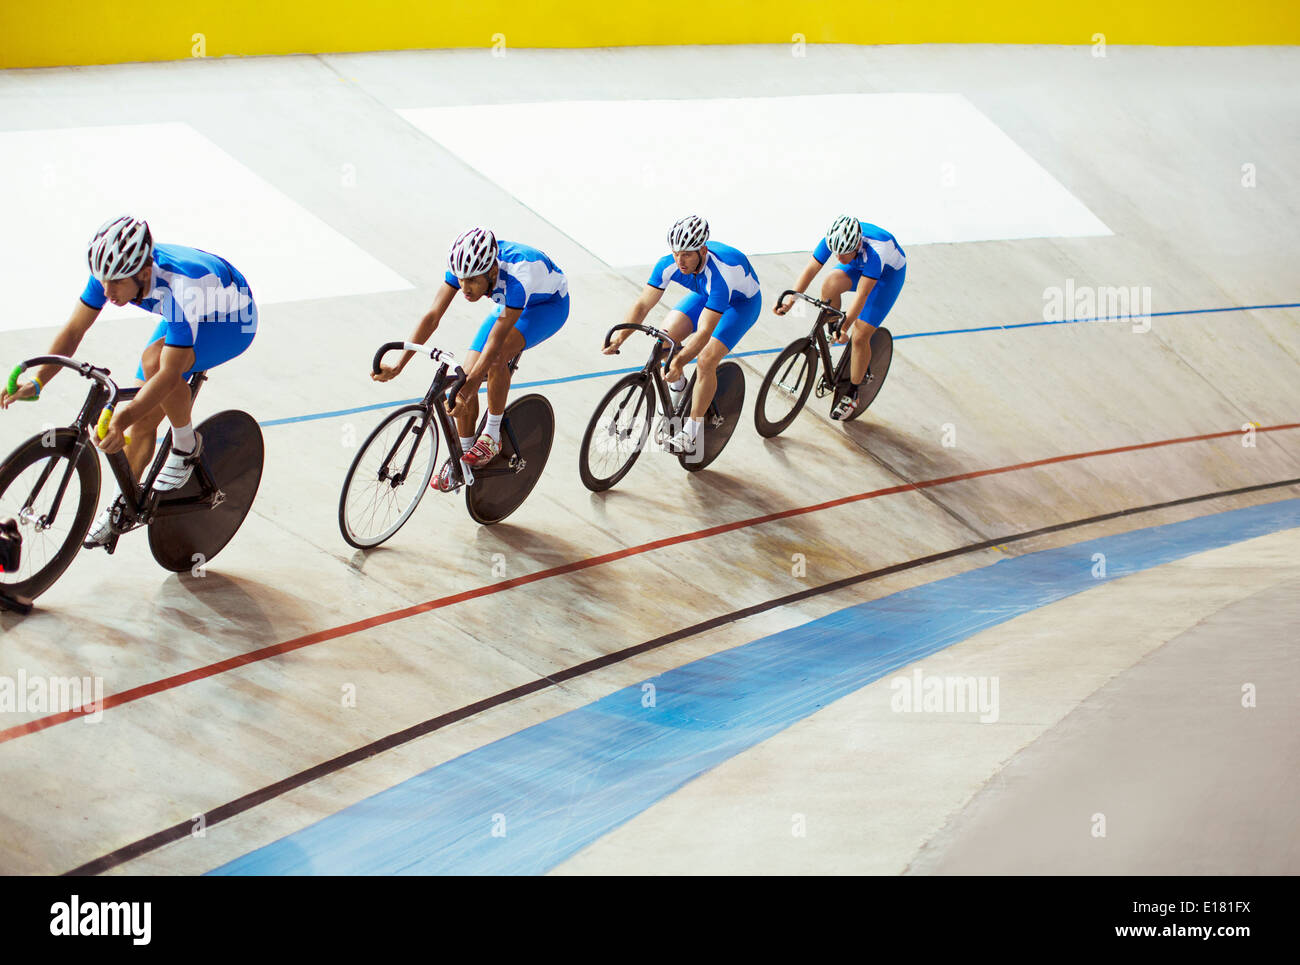 Track cycling team riding in velodrome - Stock Image